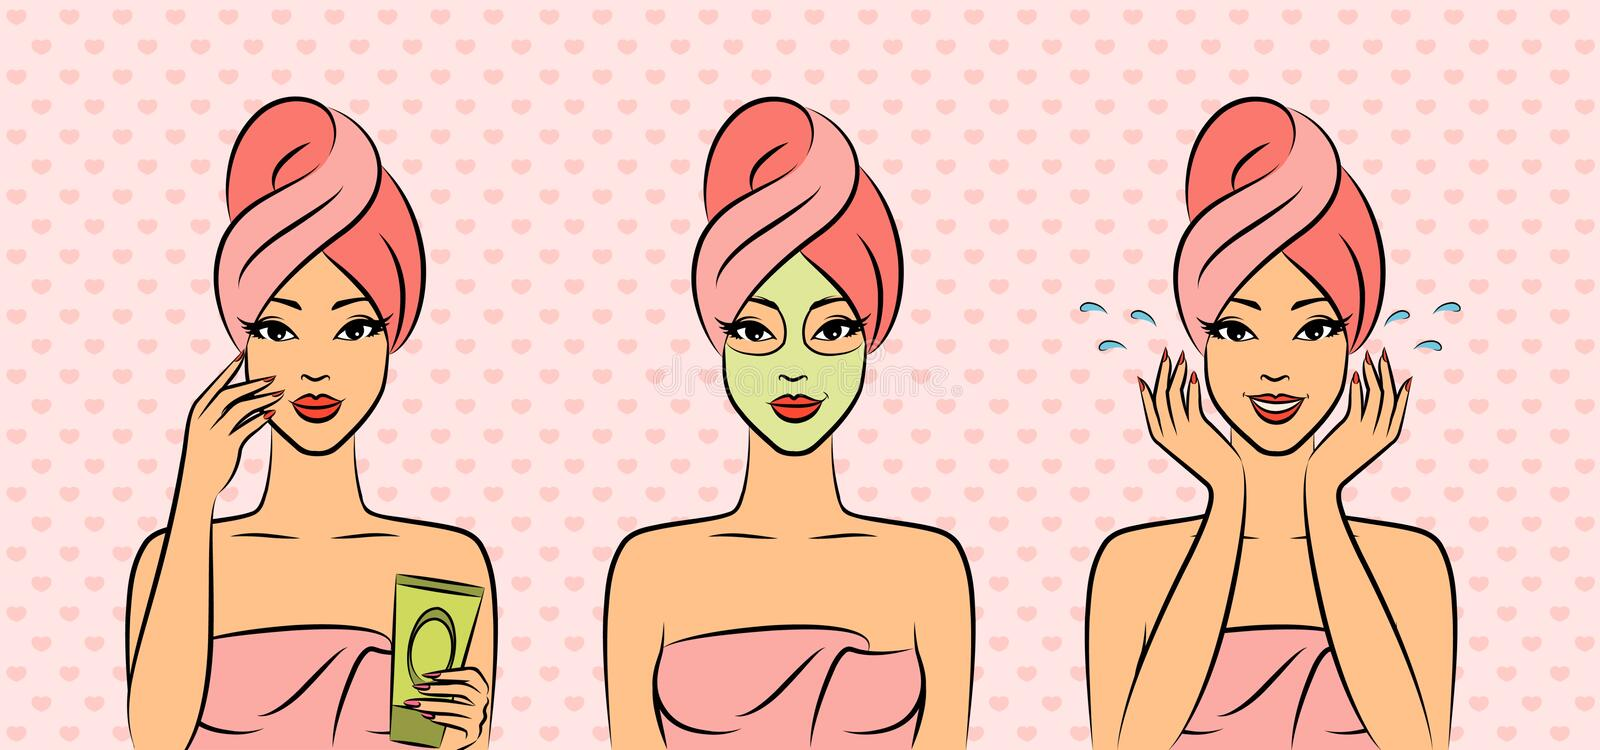 Women In A Towel After A Shower Royalty Free Stock Image